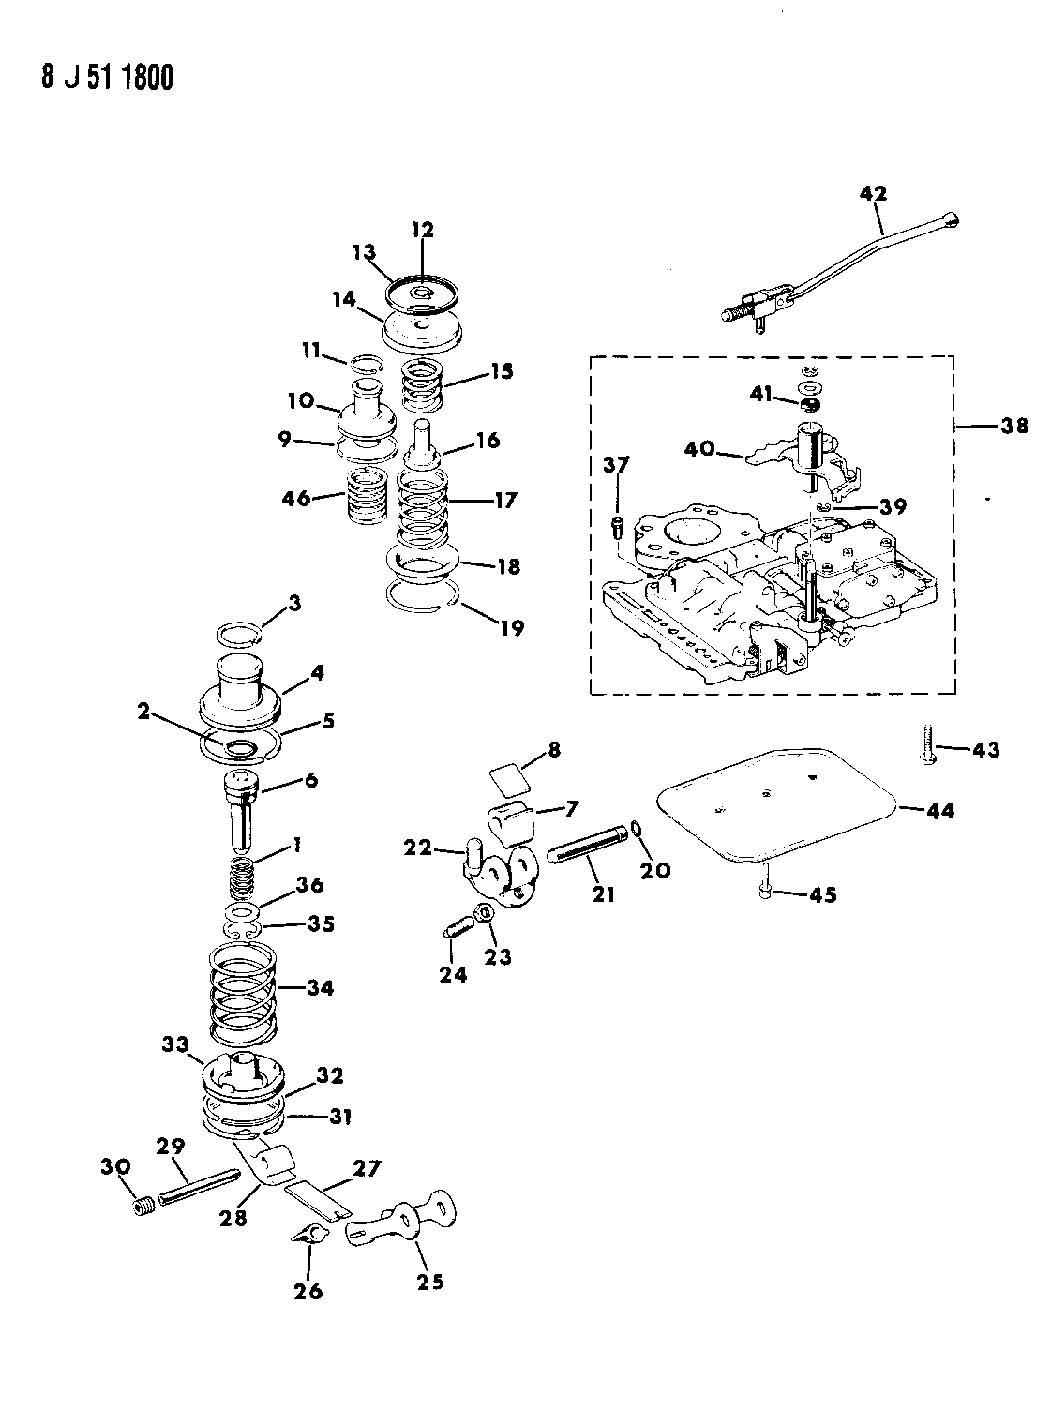 Servos Accumulator And Valve Body Automatic Transmission